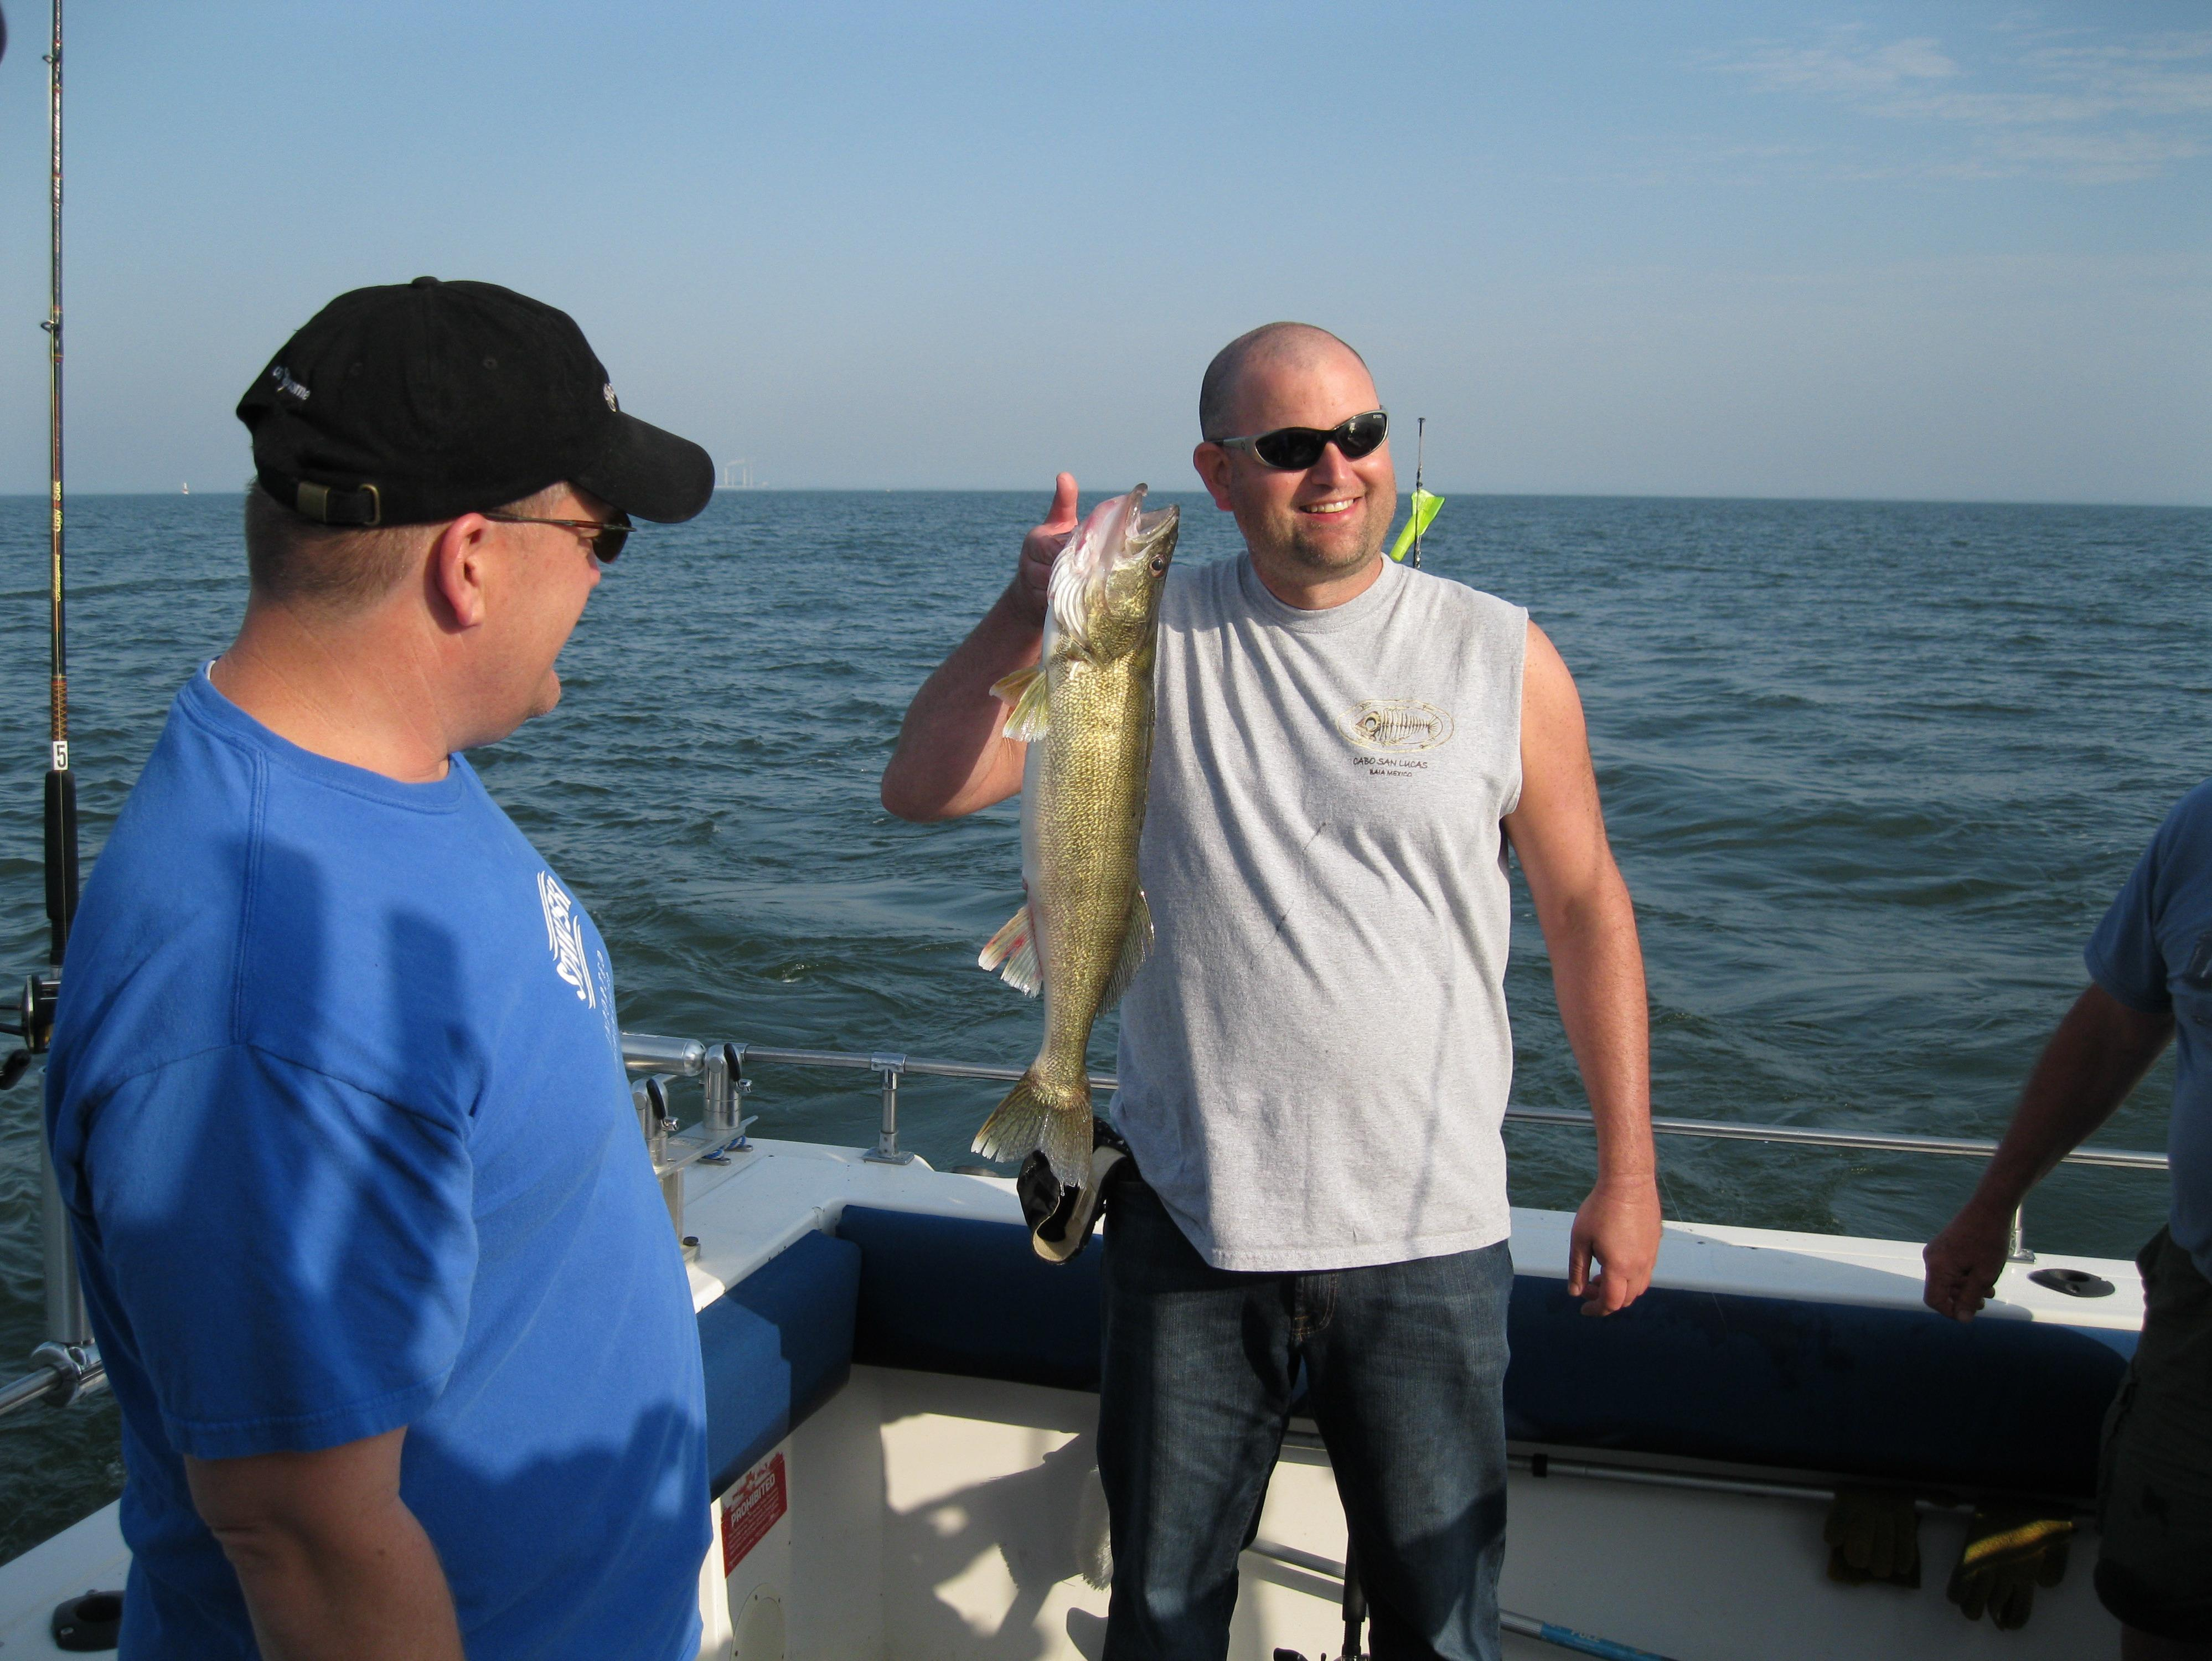 Shamrock fishing charters in curtice oh 43412 for Ohio fishing charters